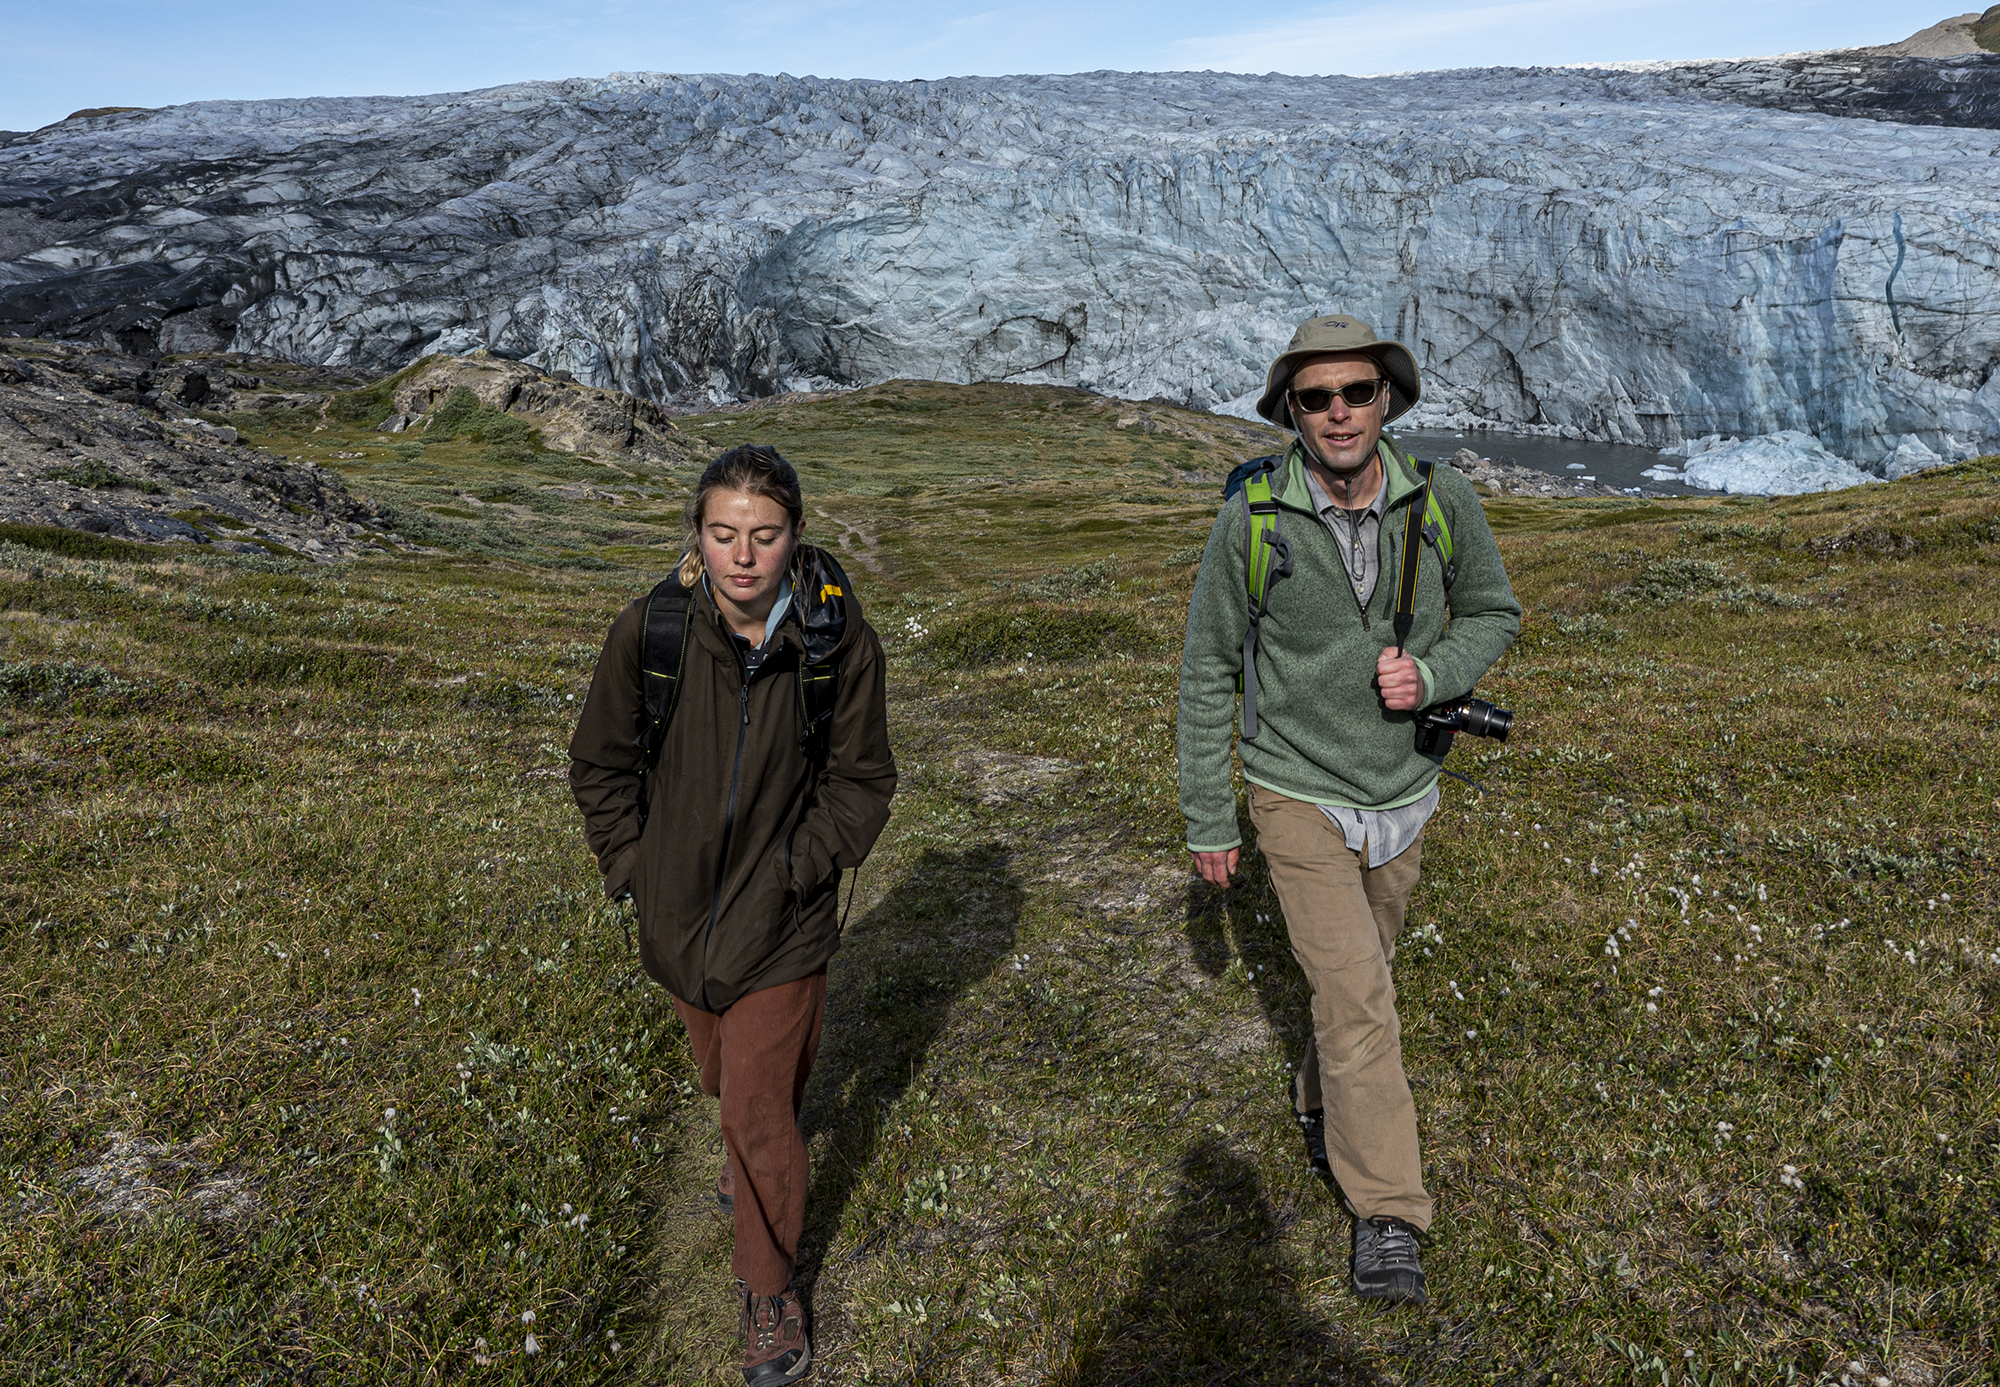 University of Michigan College of Engineering student Abigail Meyer (left) and Mark Flanner (right), associate professor in Climate and Space Sciences and engineering in the University of Michigan College of Engineering, in front of the Russell Glacier in Greenland.